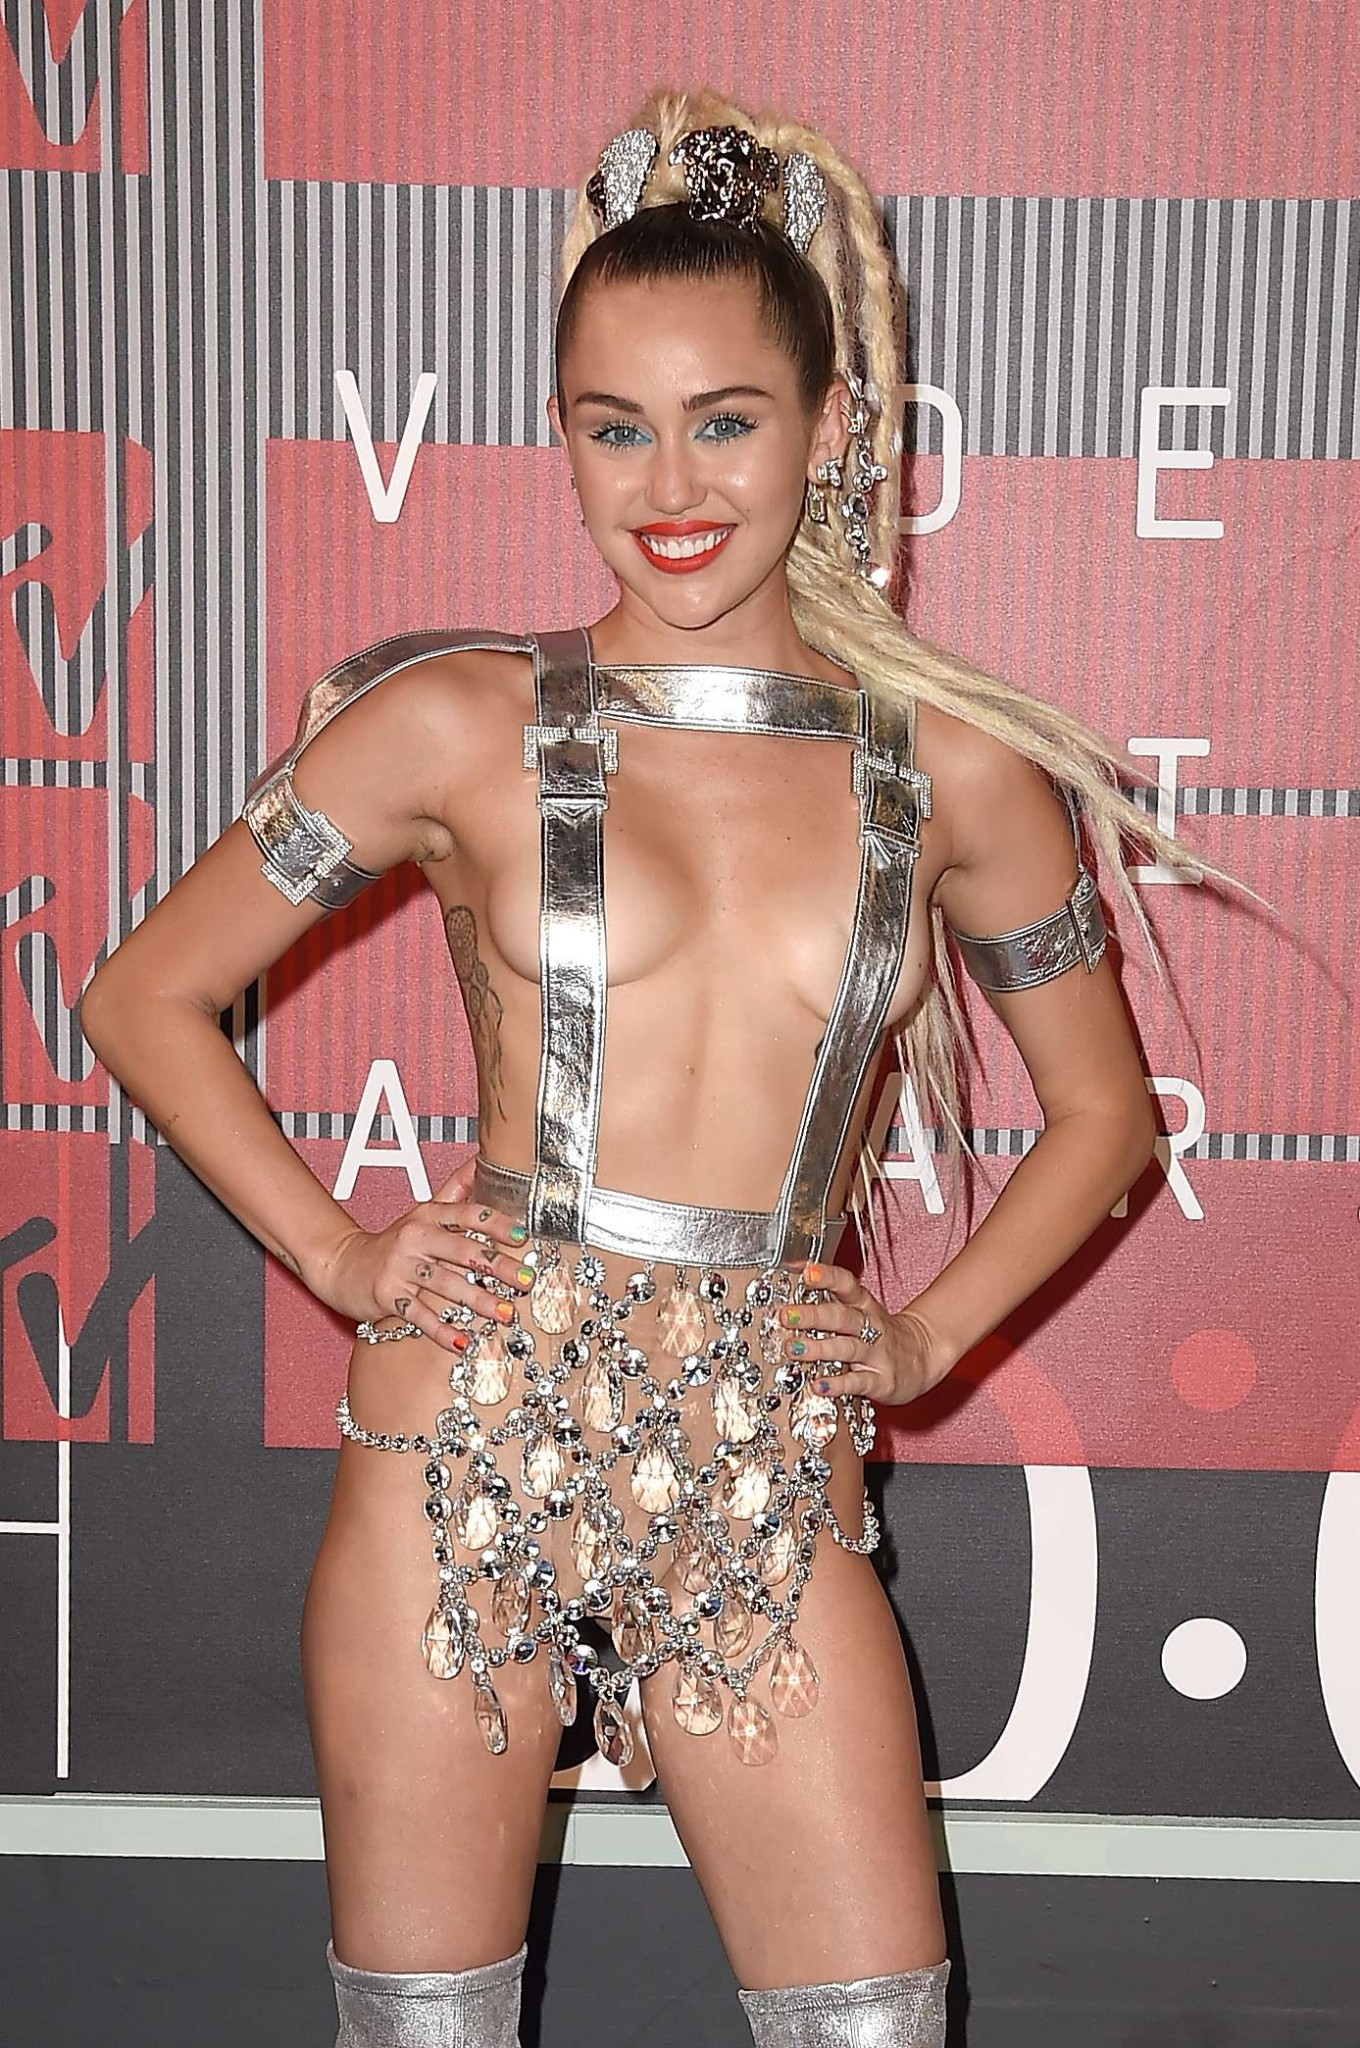 miley-cyrus-completely-naked-pics